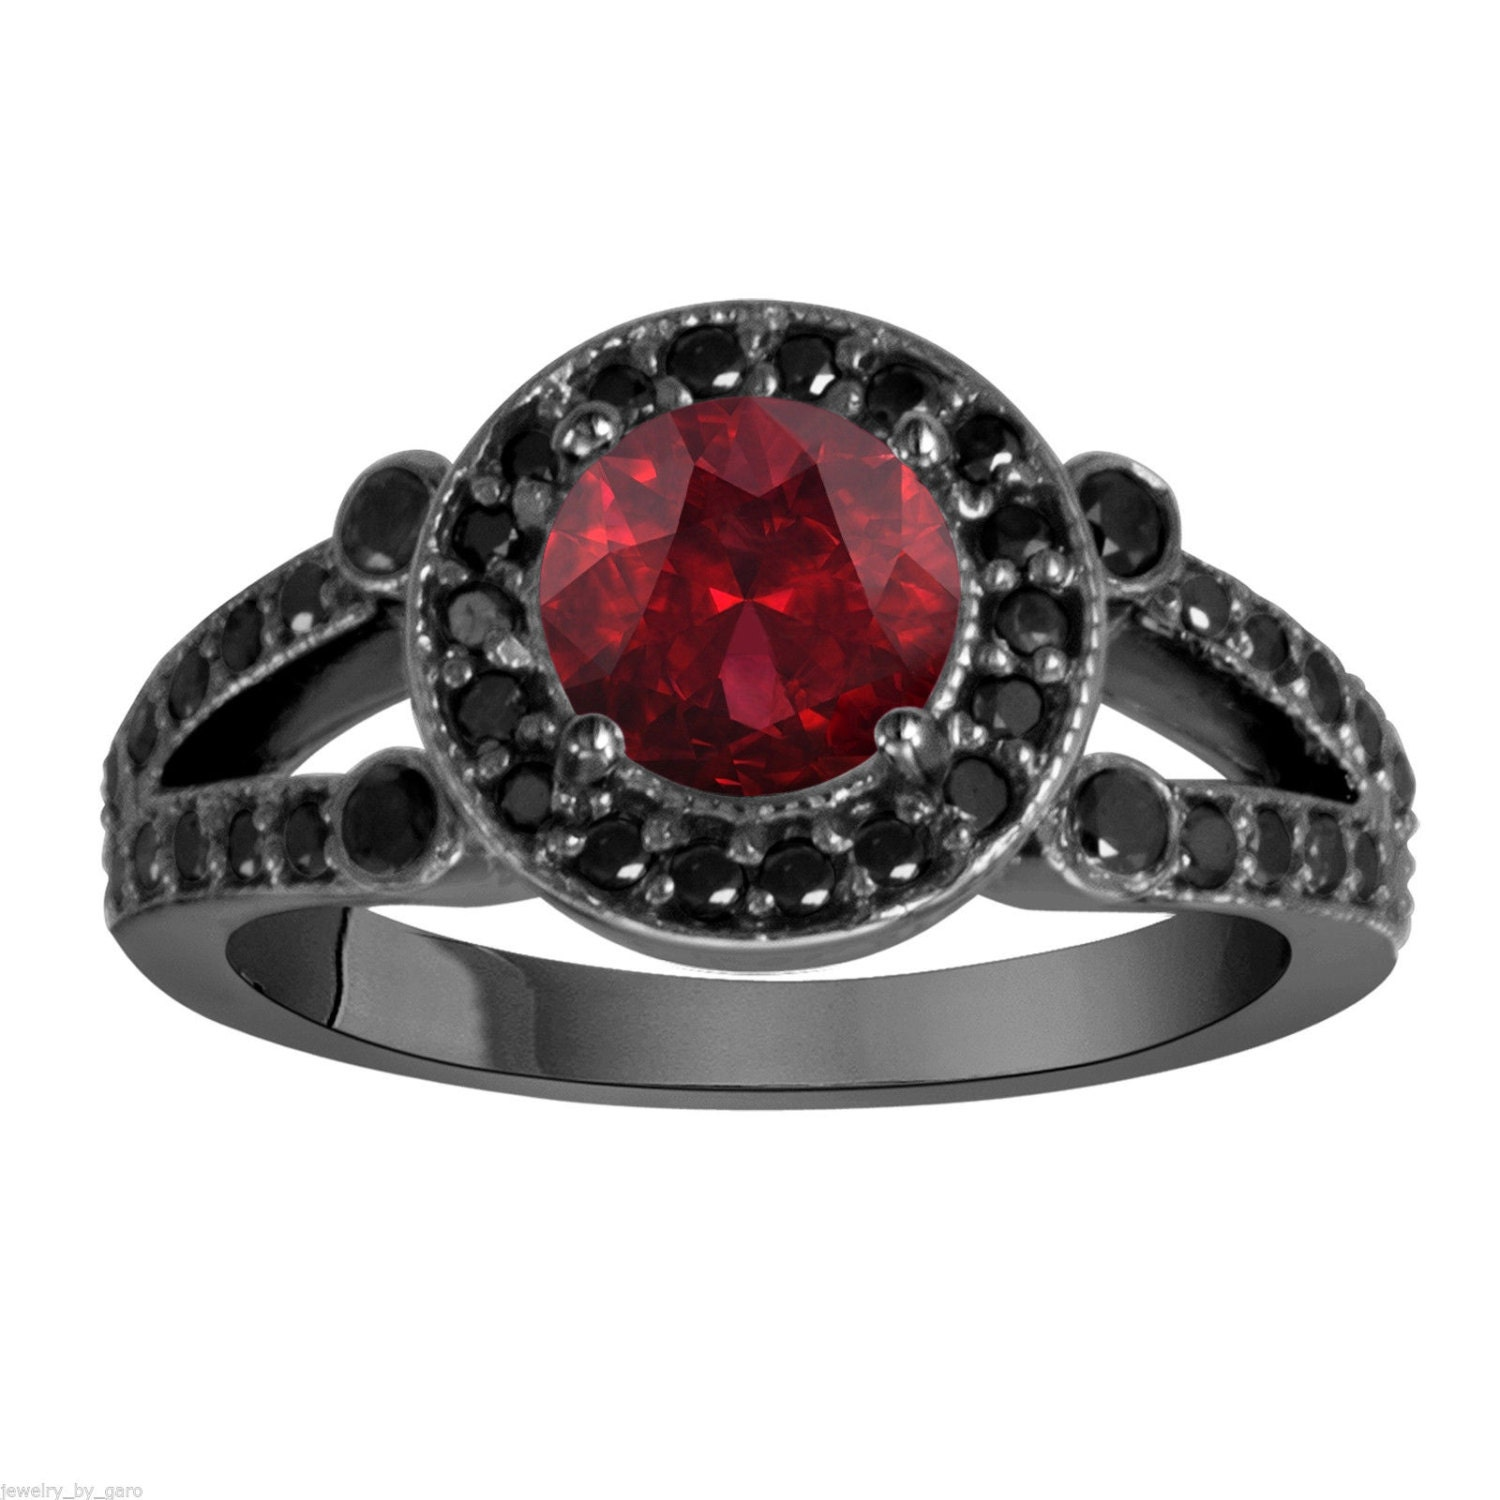 garnet black diamond engagement ring wedding ring vintage. Black Bedroom Furniture Sets. Home Design Ideas